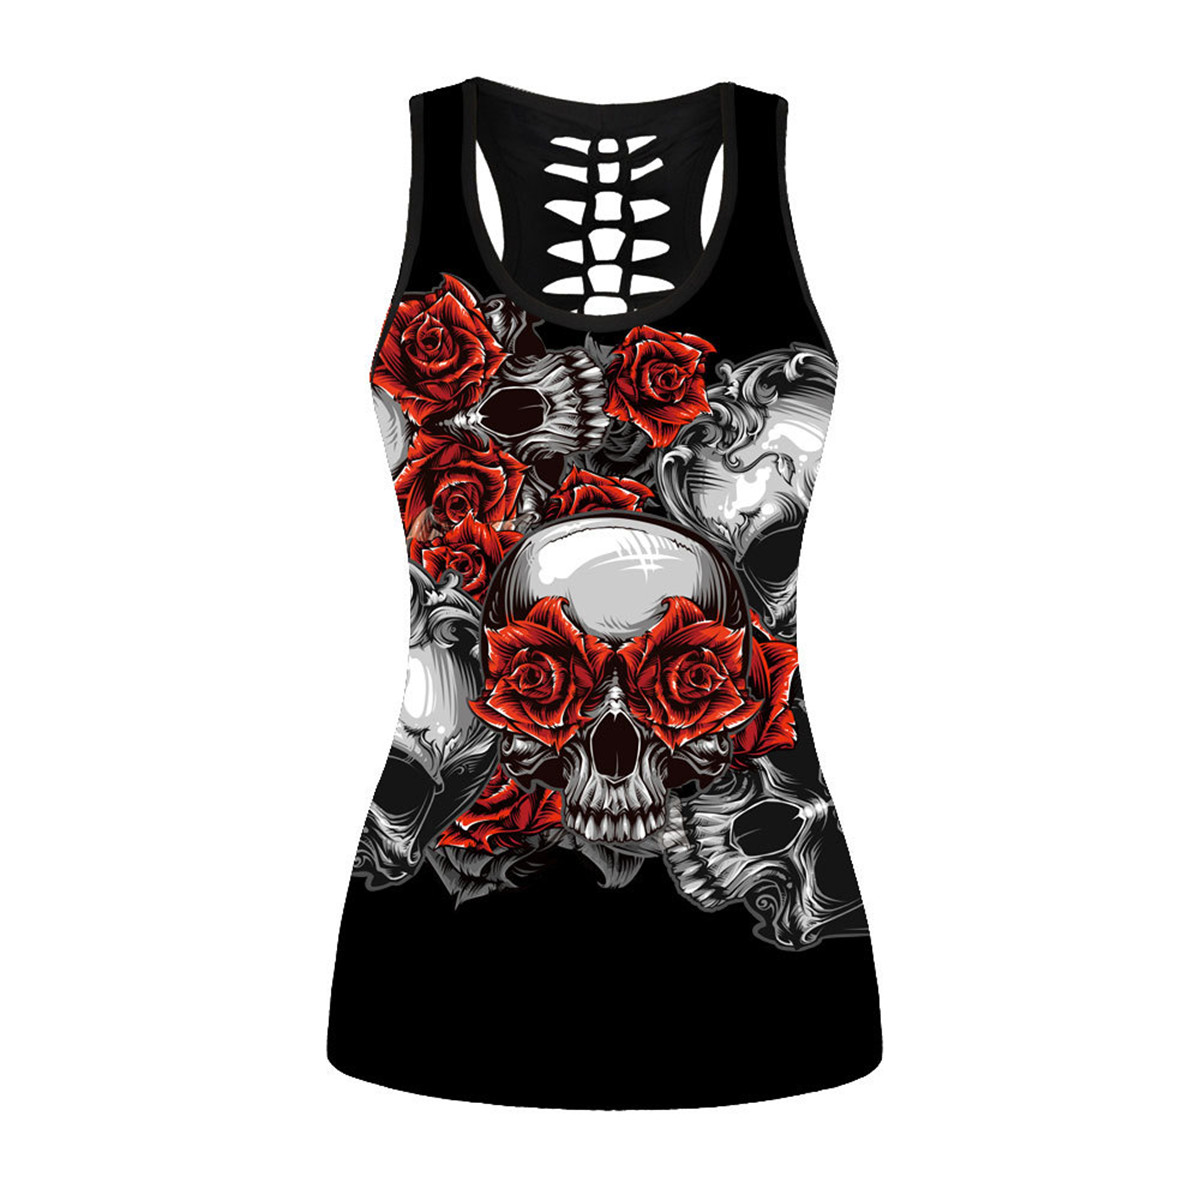 Dark Skull Rose Funny Tops Women Summer Clothing Retro Black Hollow Out Tank Top Sexy Vest Sleeveless Clothing Flower Hot New